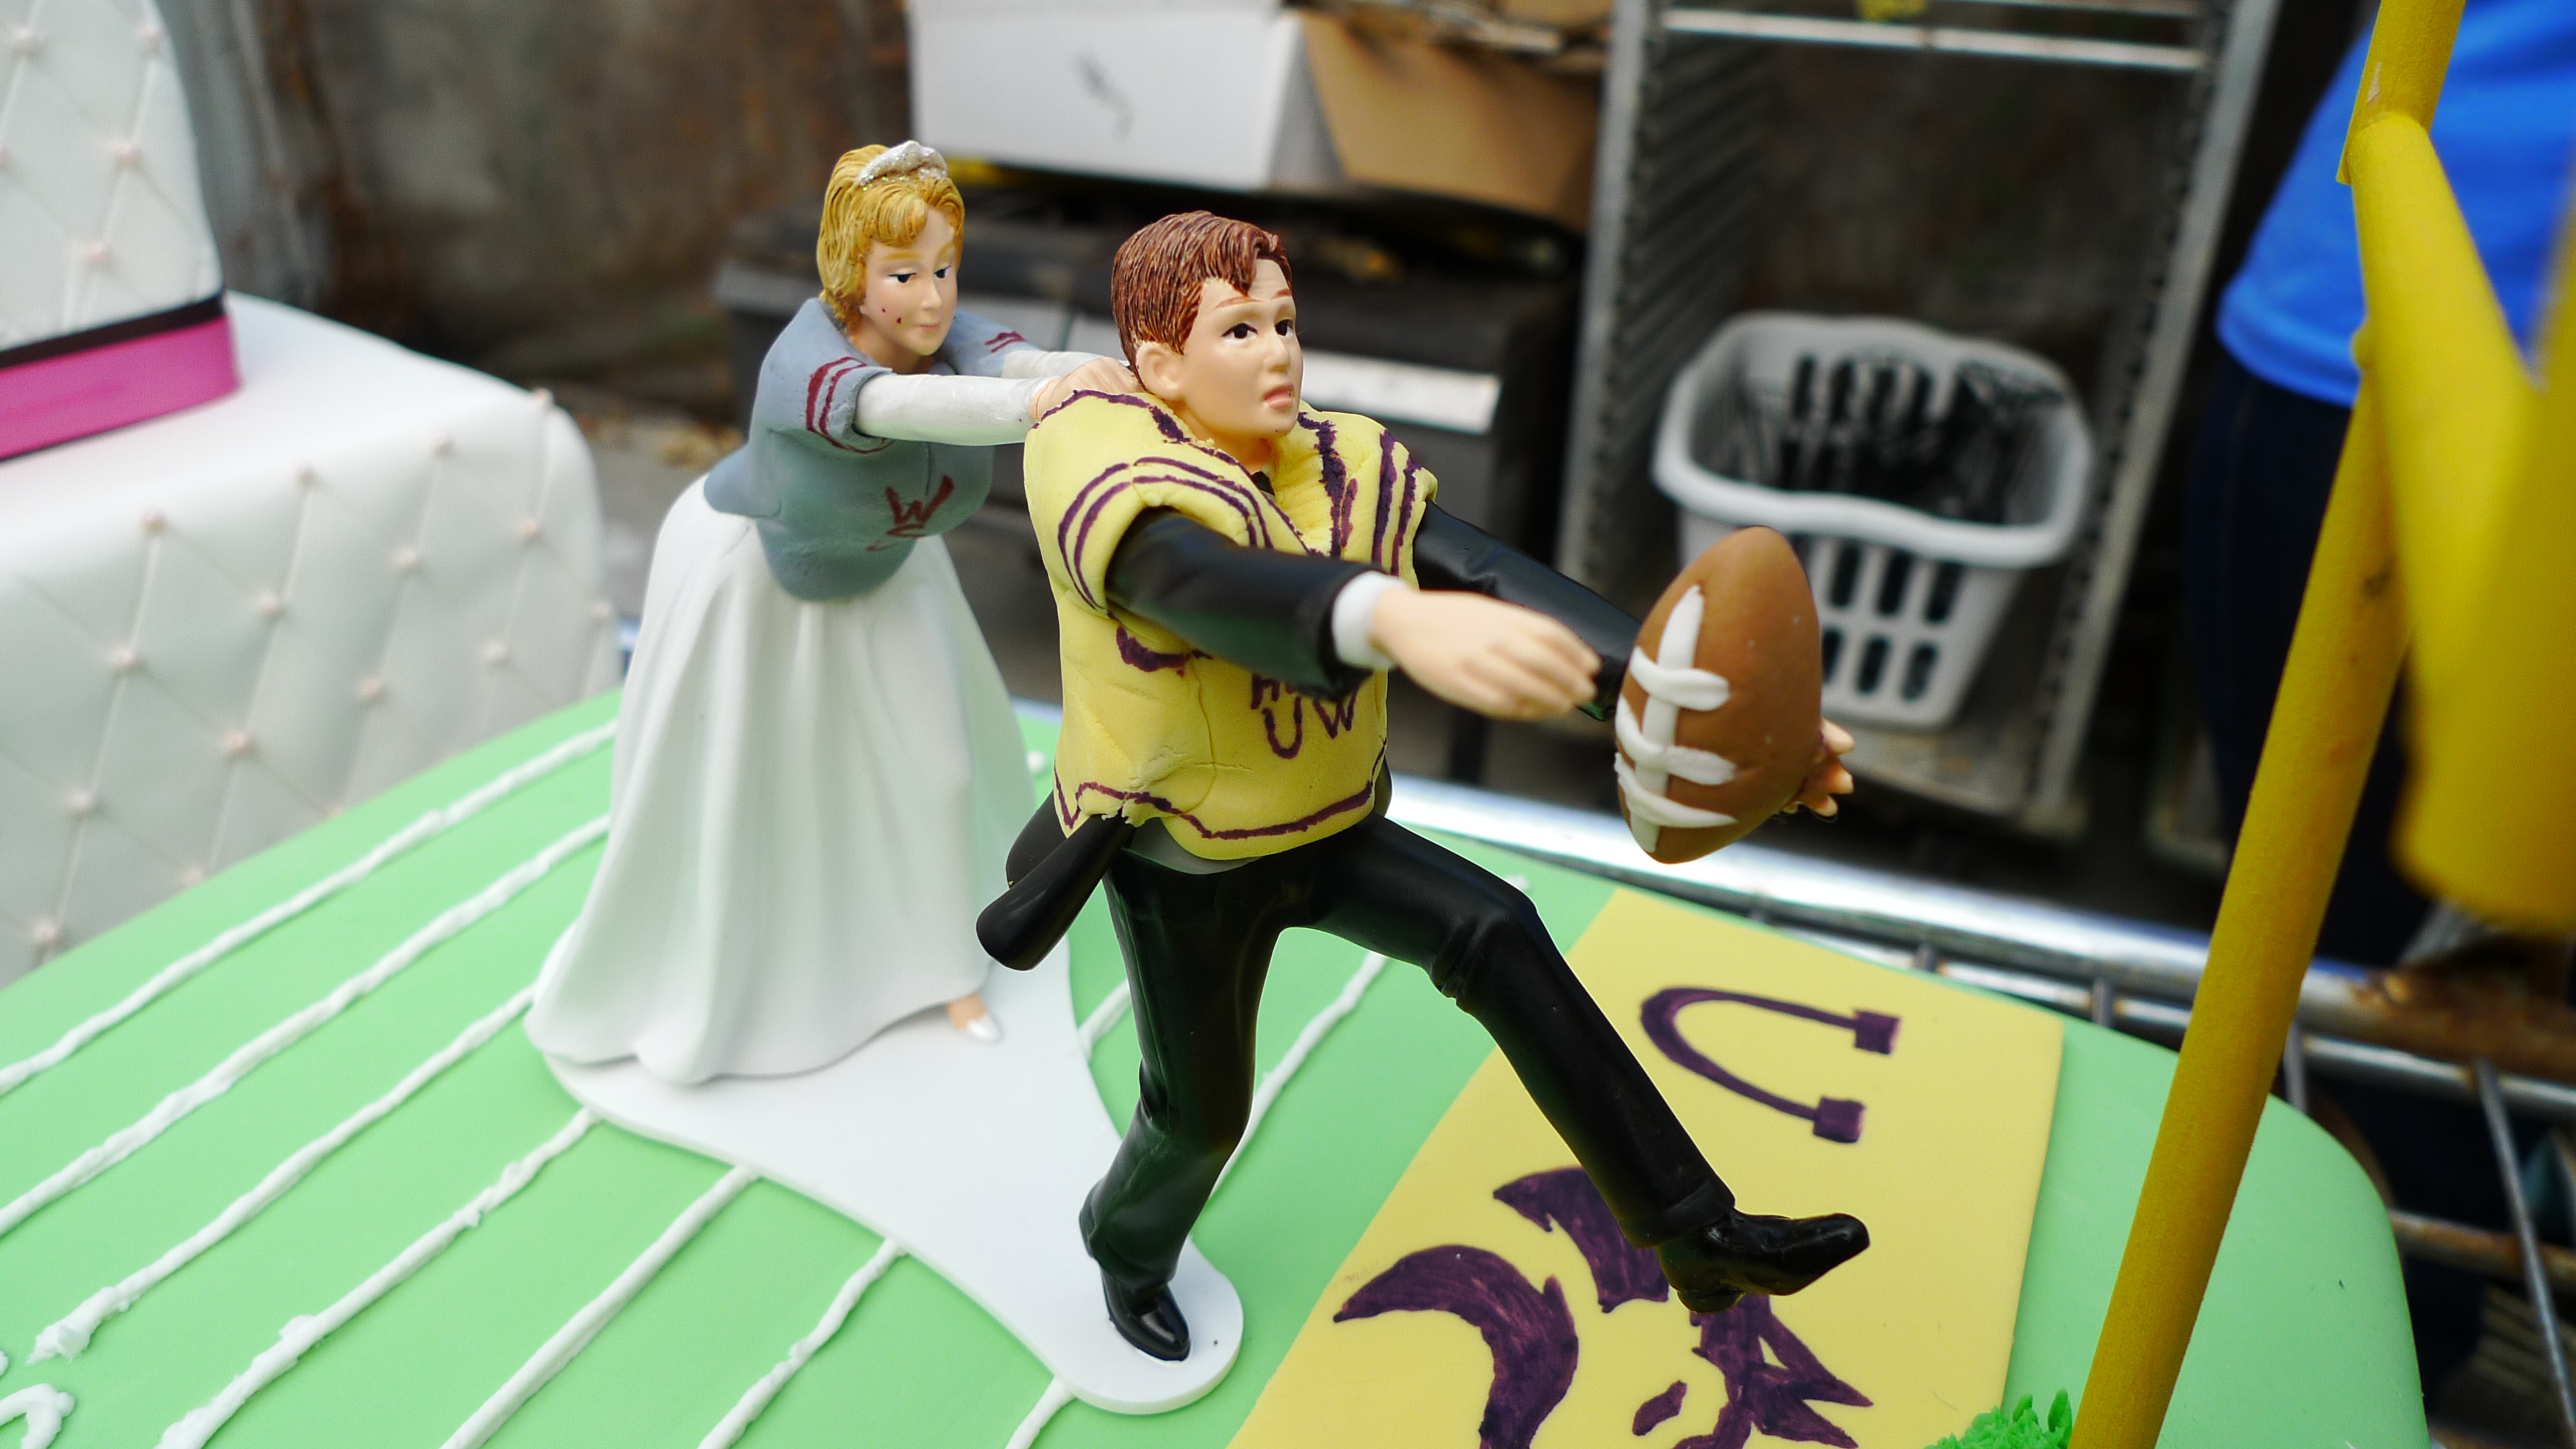 Image 12 of Awesome Groom's Cakes